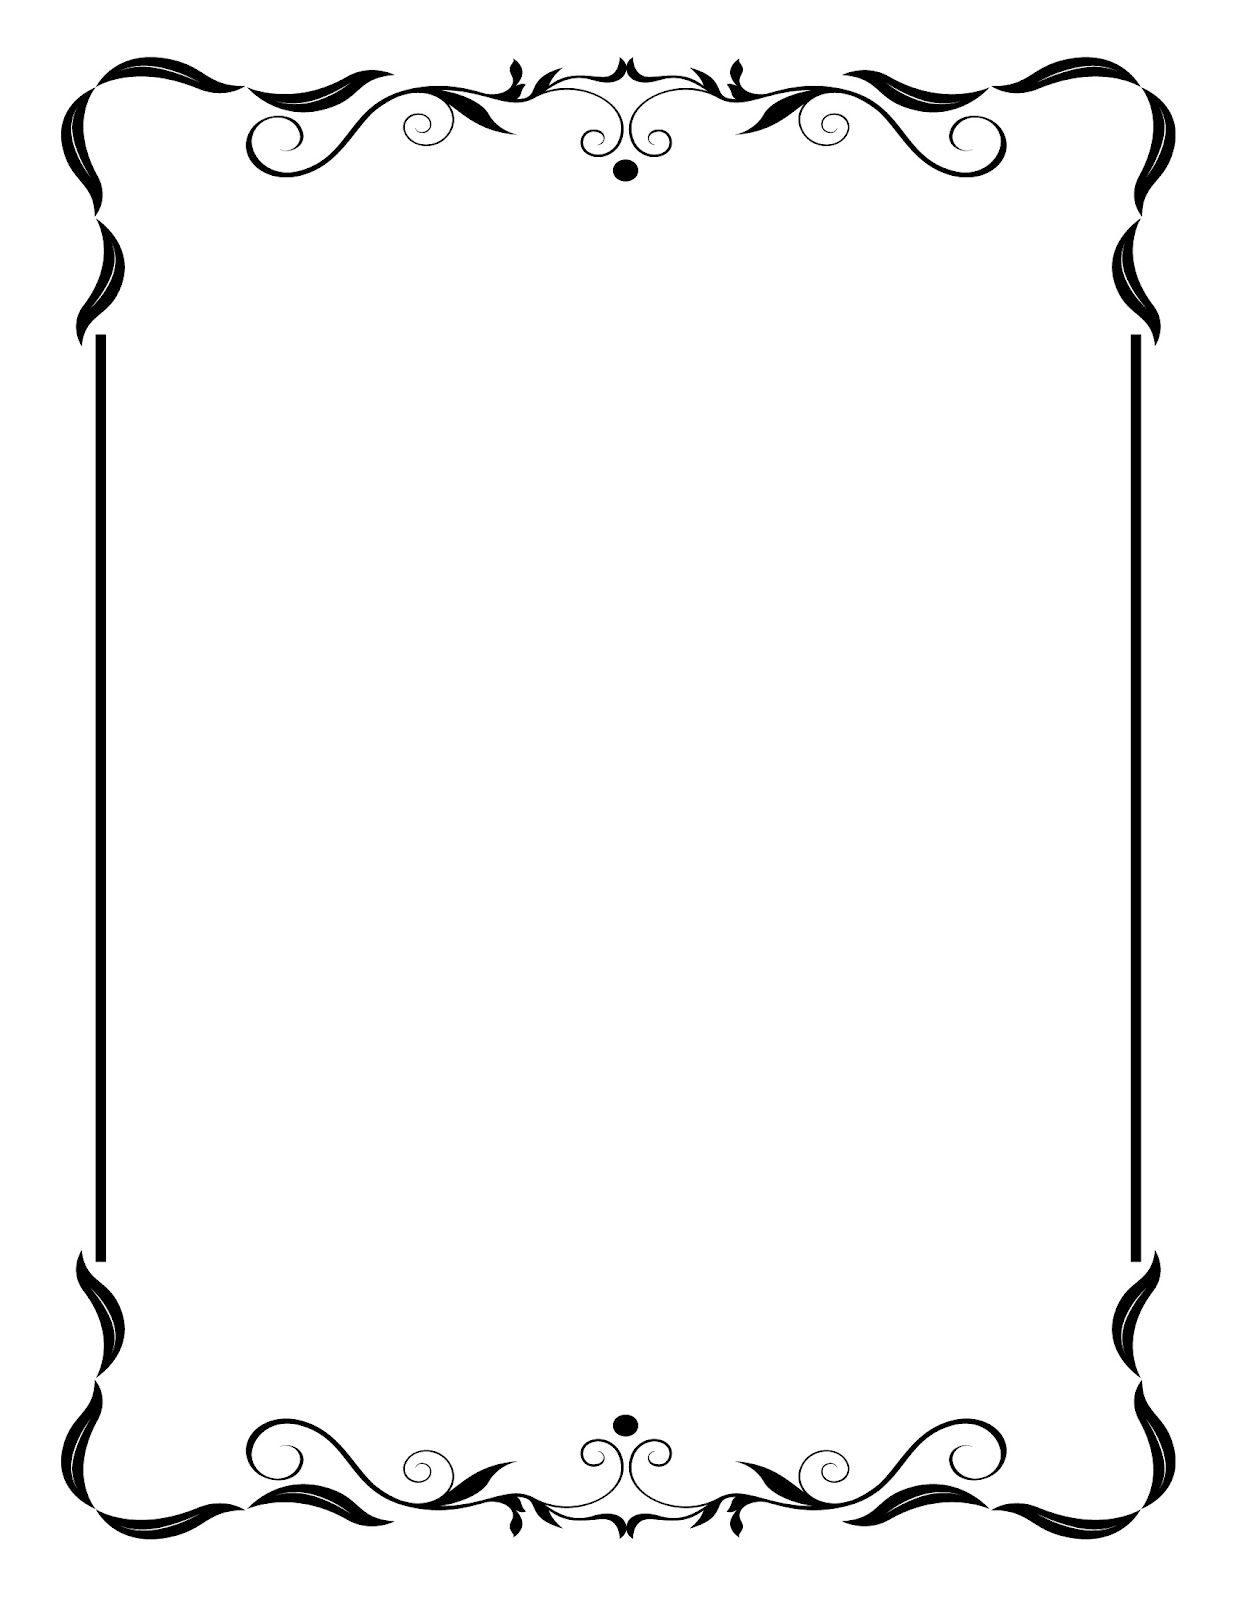 Antique template clipart #16